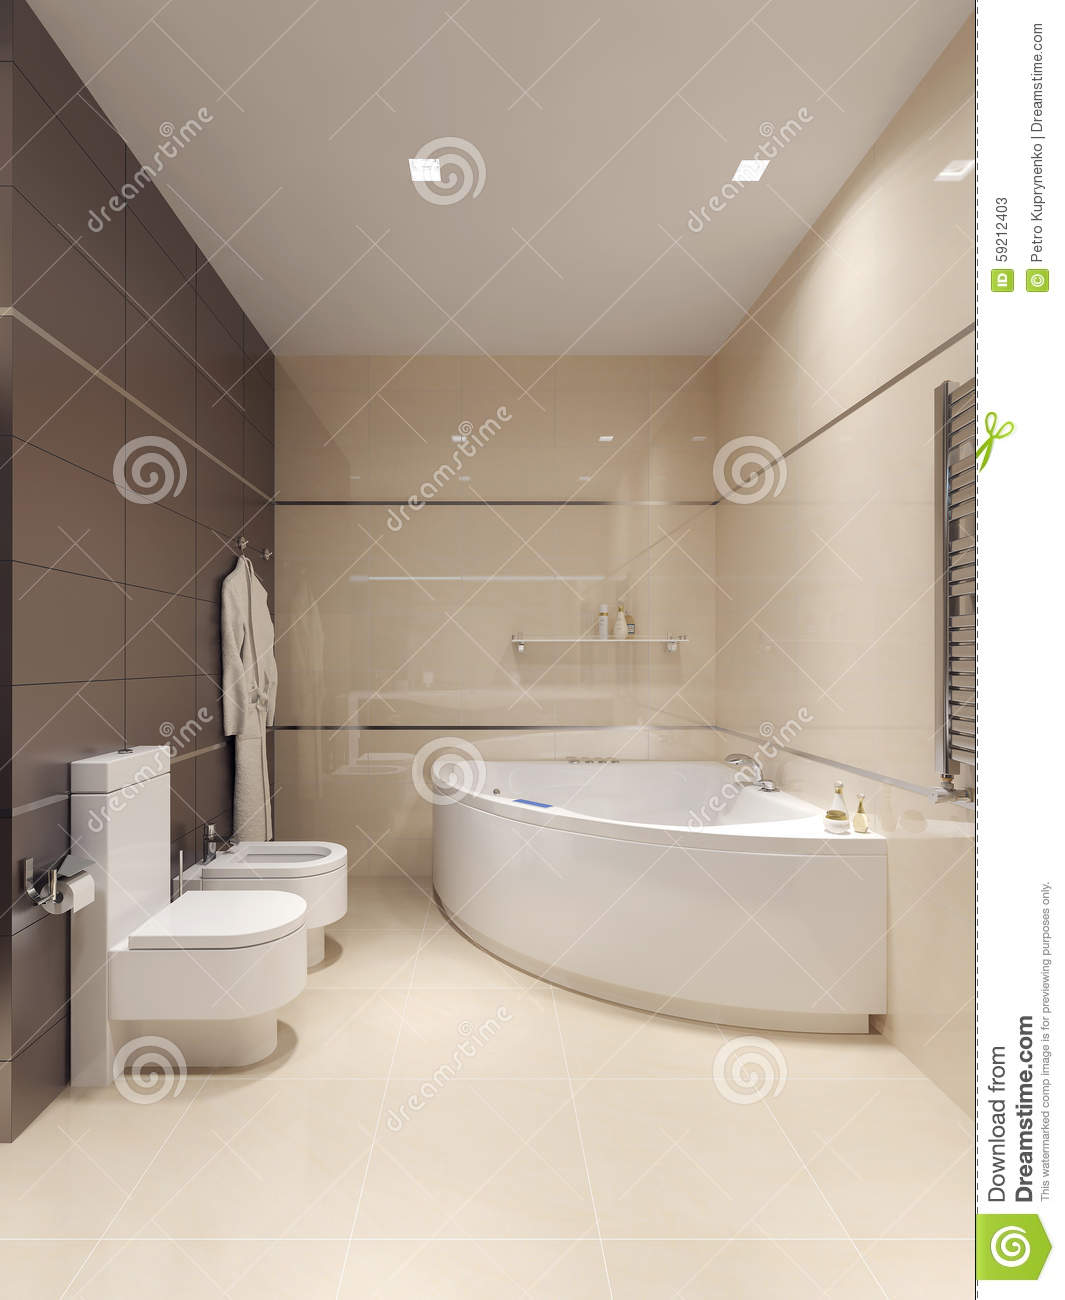 bathroom in high tech style stock illustration